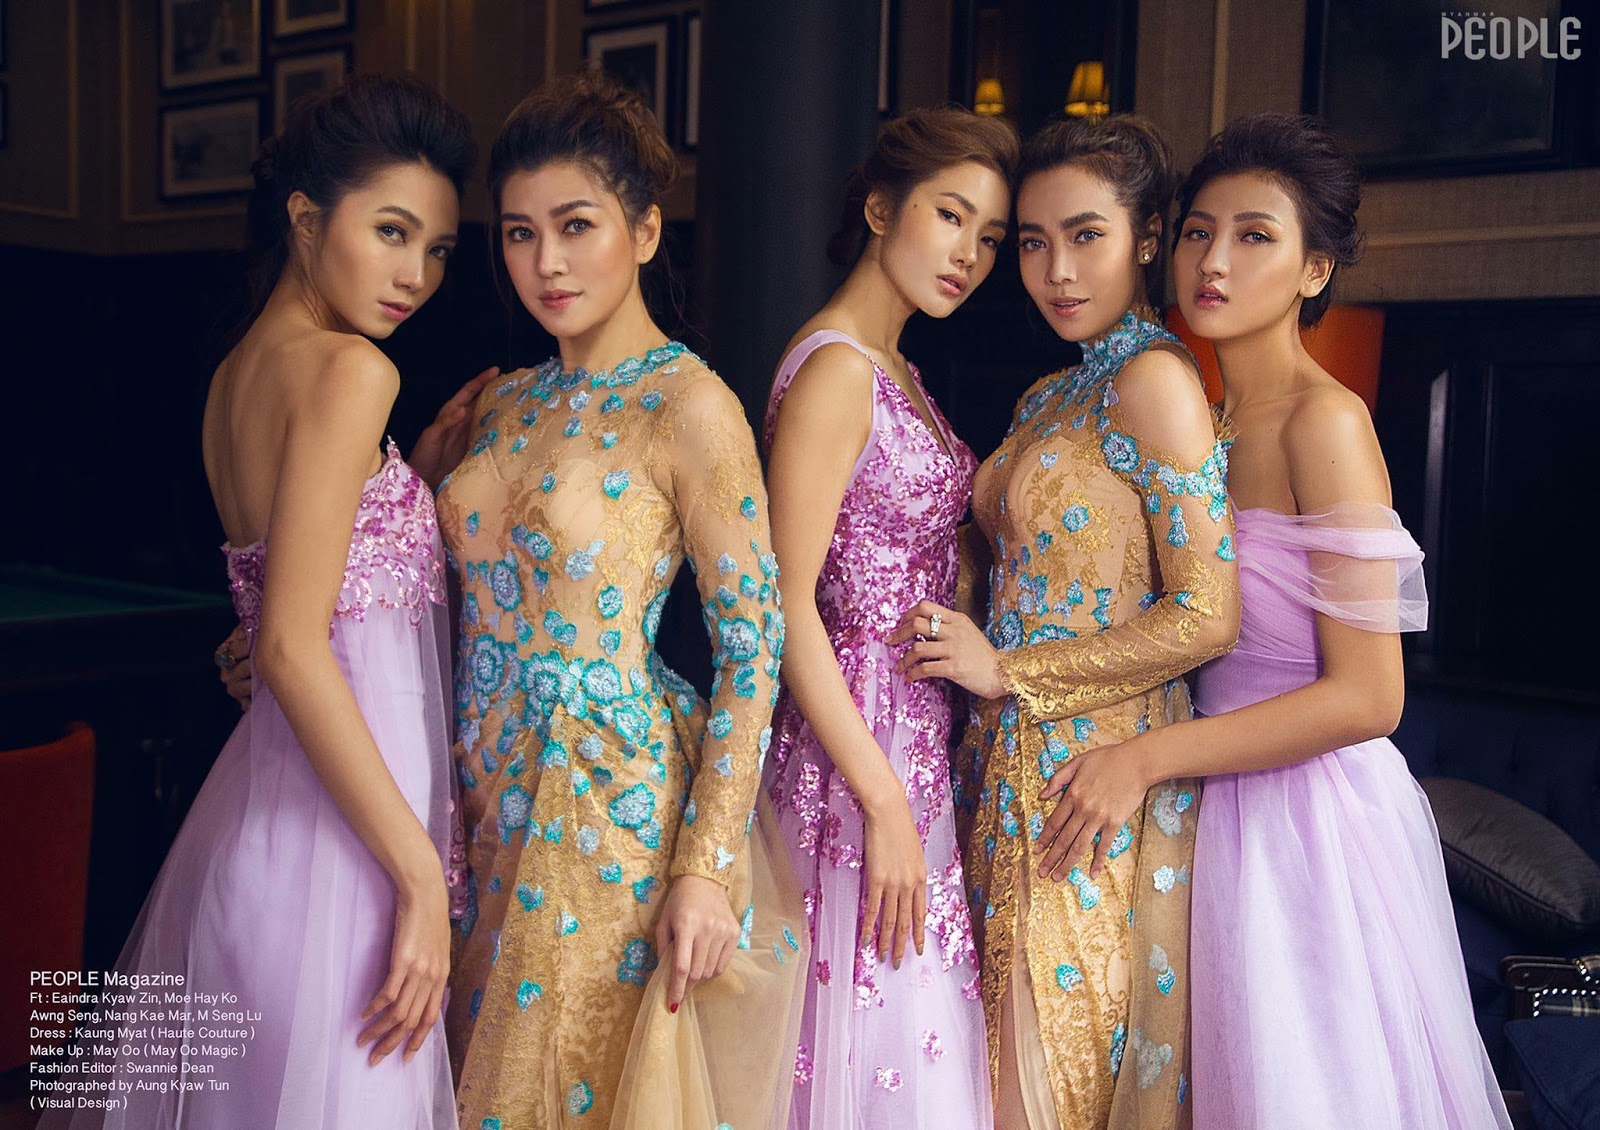 People Magazine Cover Photoshoot By Star Models Myanmar Celebrity Photo Albums